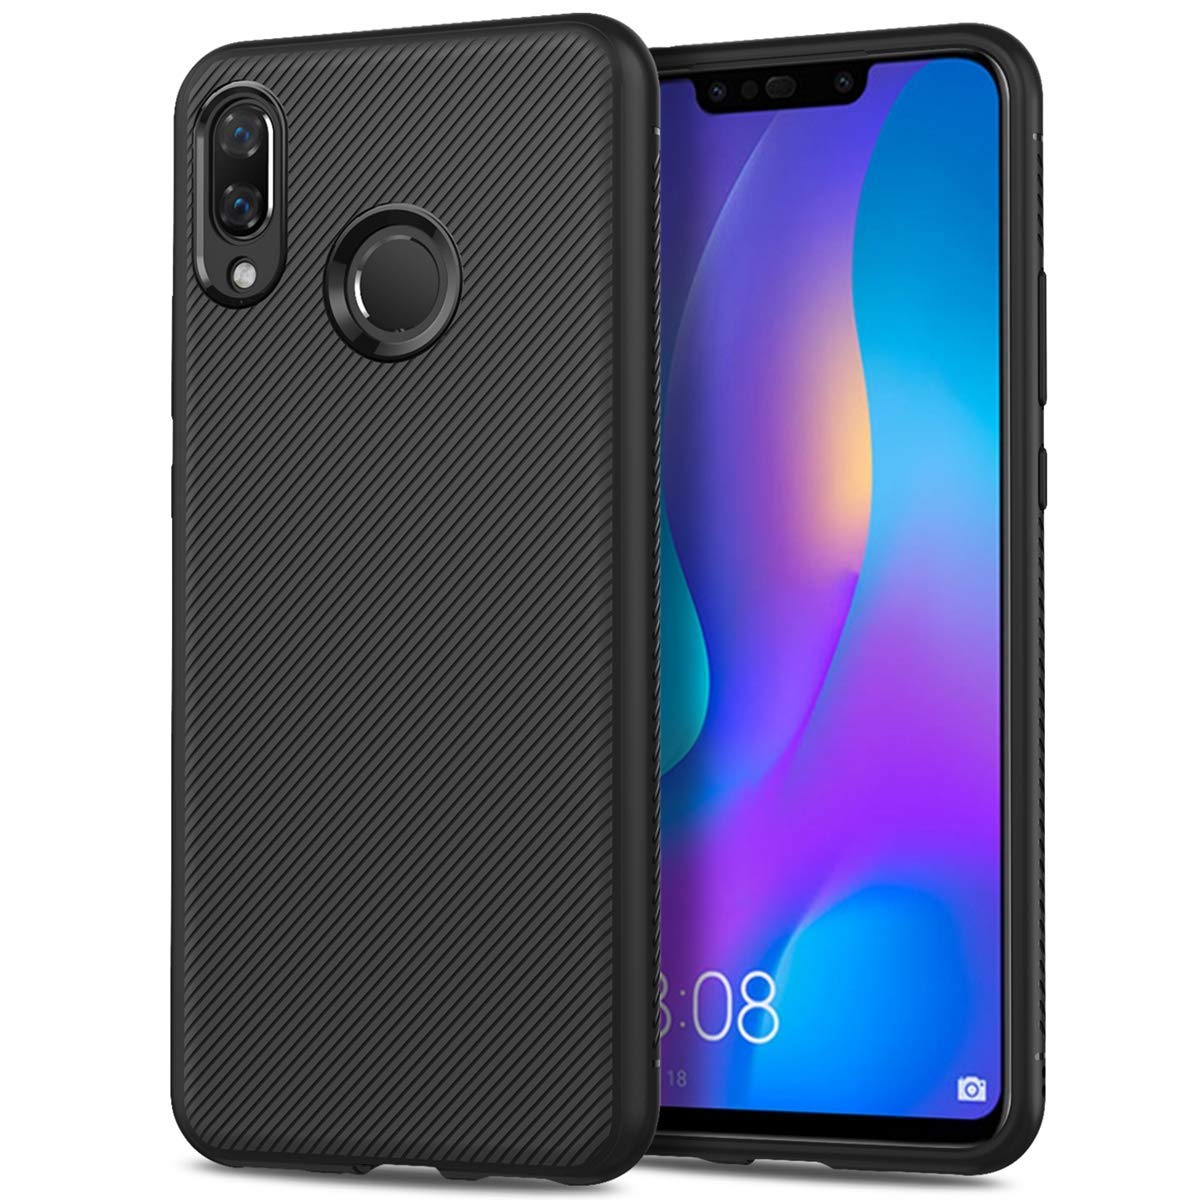 low priced 5c72e cebfd REALIKE Redmi Note 7S / Redmi Note 7 Pro Back Cover, Flexible Texture  Pattern Back Case for Redmi Note 7S / Redmi Note 7 / Note 7 Pro